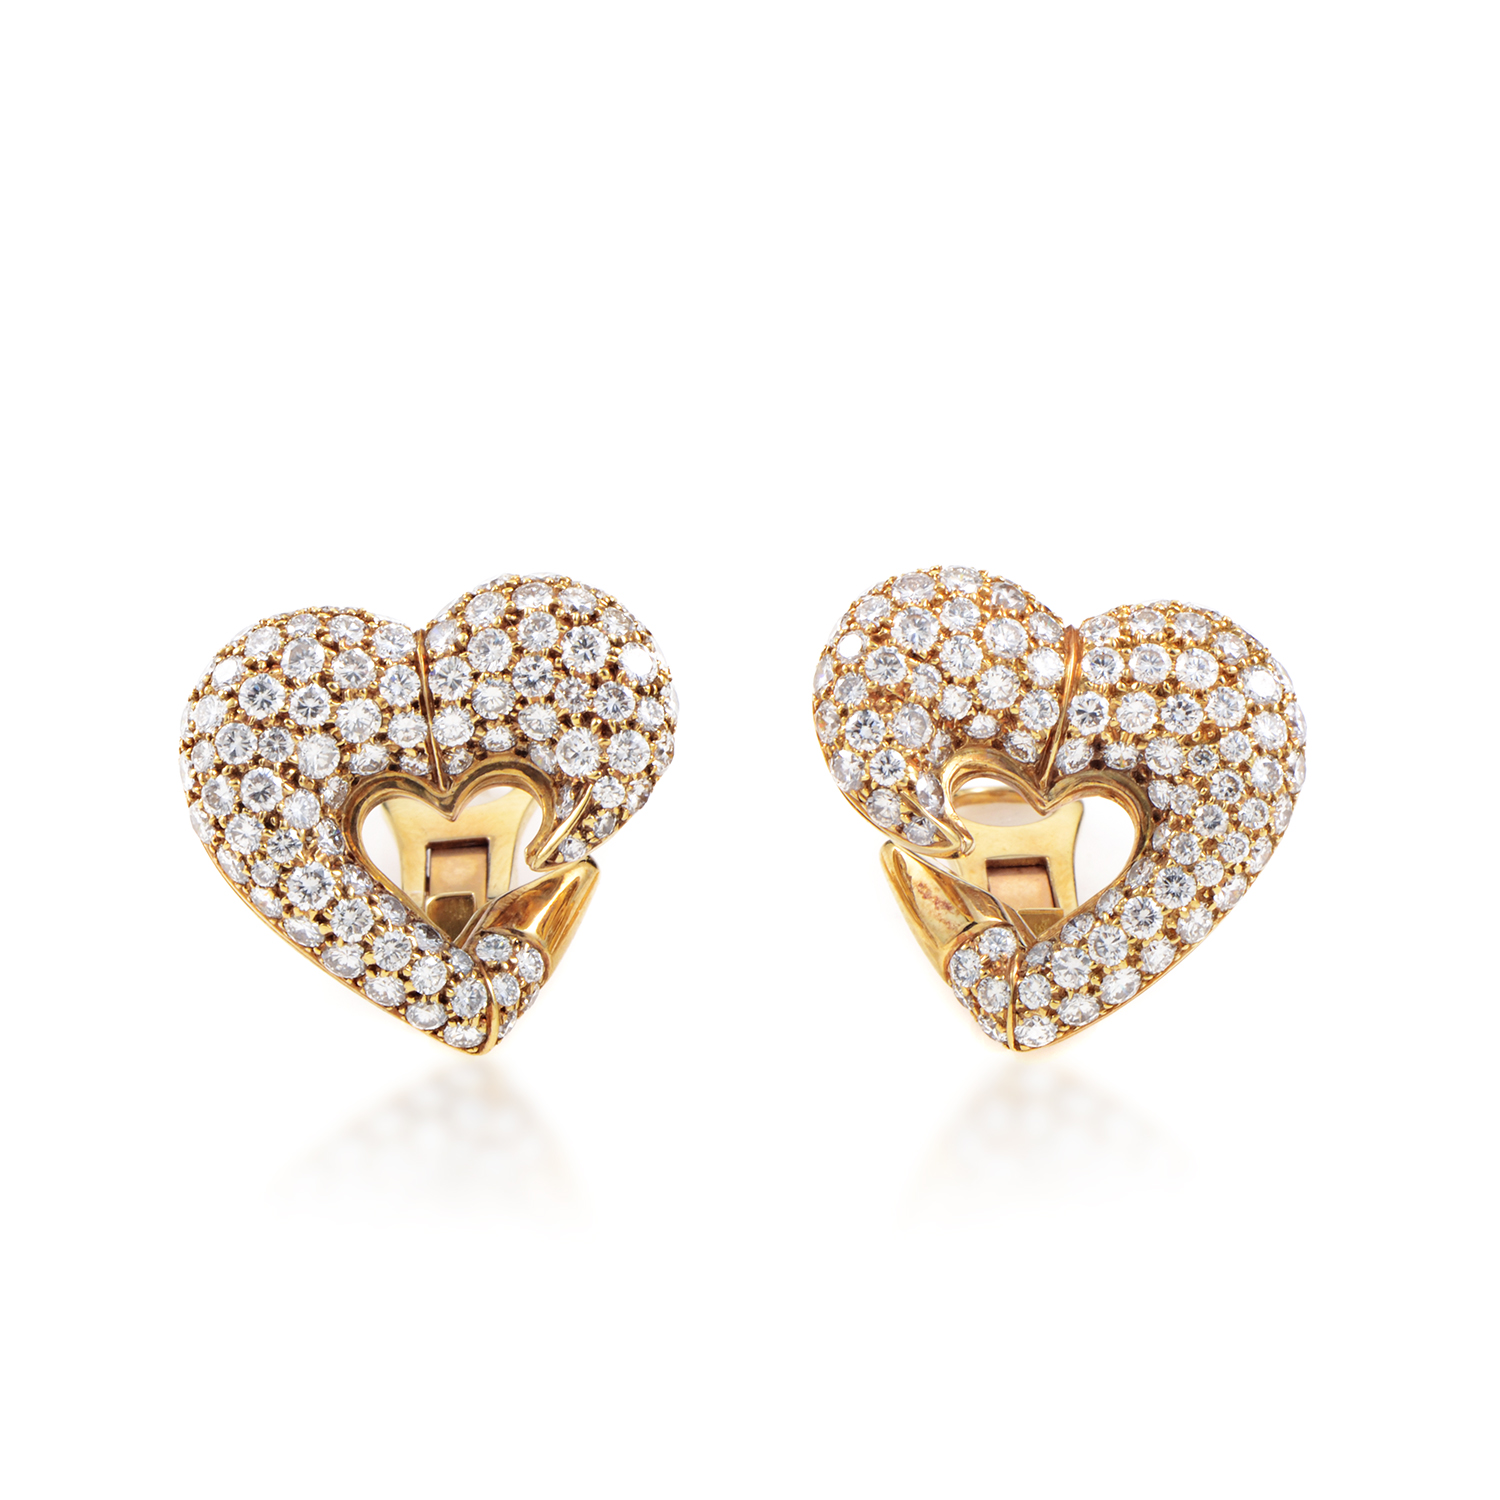 Bvlgari Vintage 18K Yellow Gold Diamond Pave Heart Clip-On Earrings